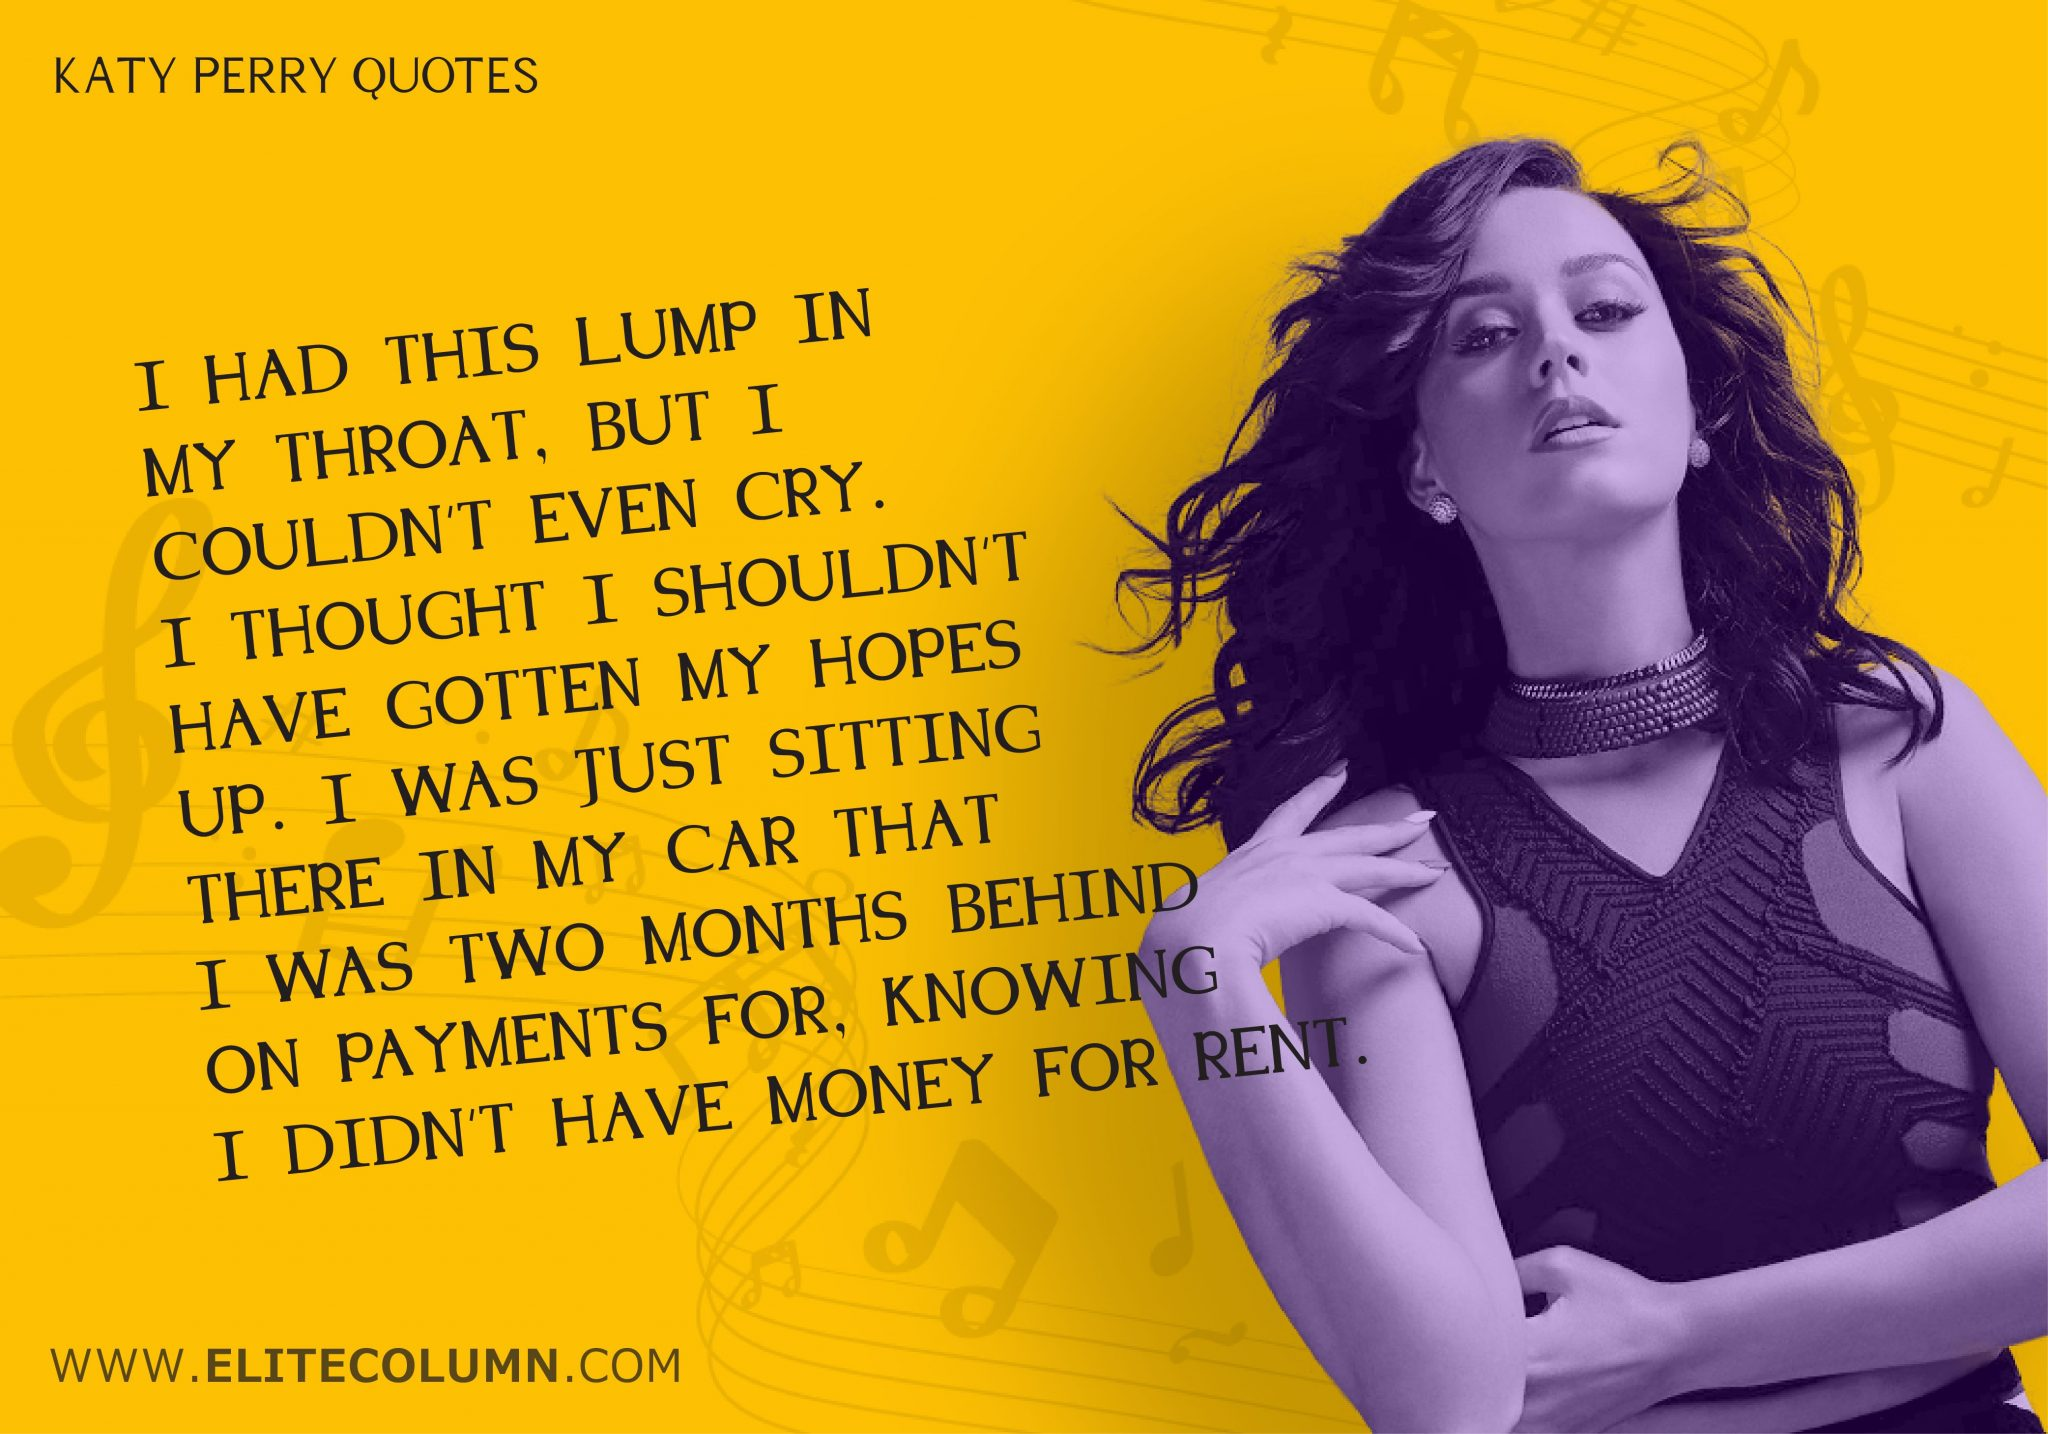 Katy Perry Quotes (7)